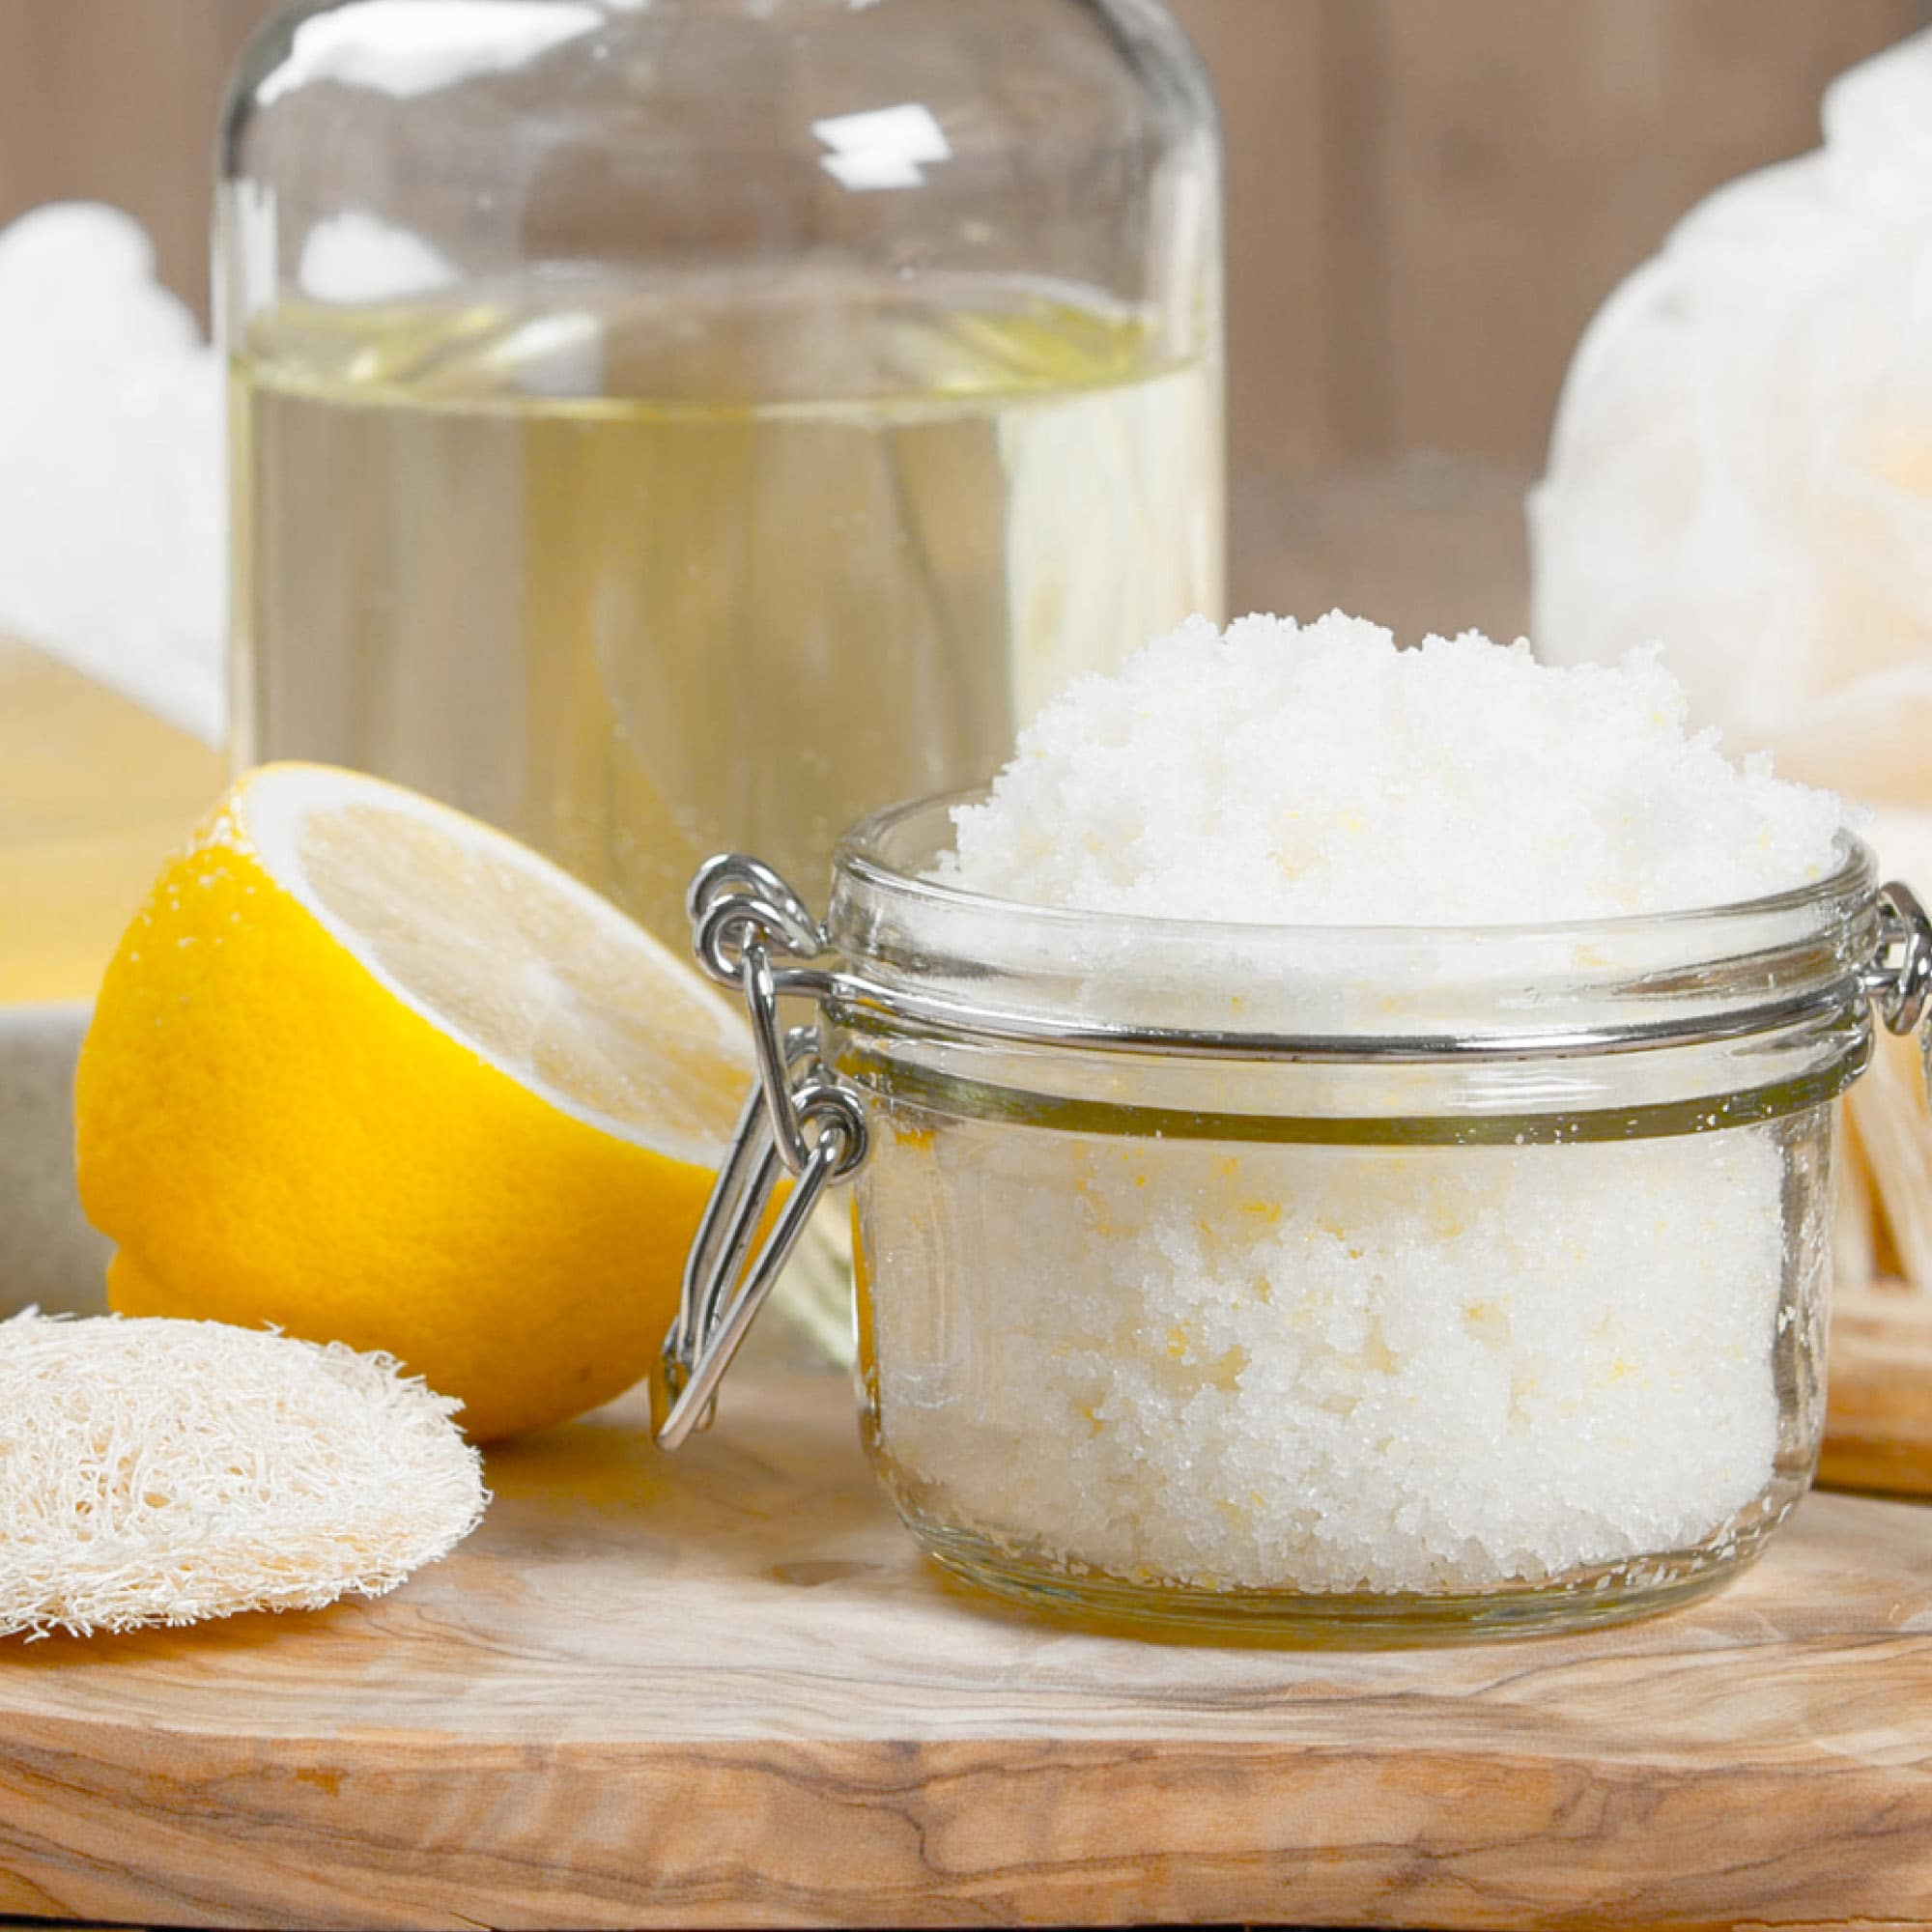 Did you know sugar contains natural alpha-hydrolic acids that exfoliate & soften your skin? Three ingredients is all you need to make this Lemon Sugar Scrub!